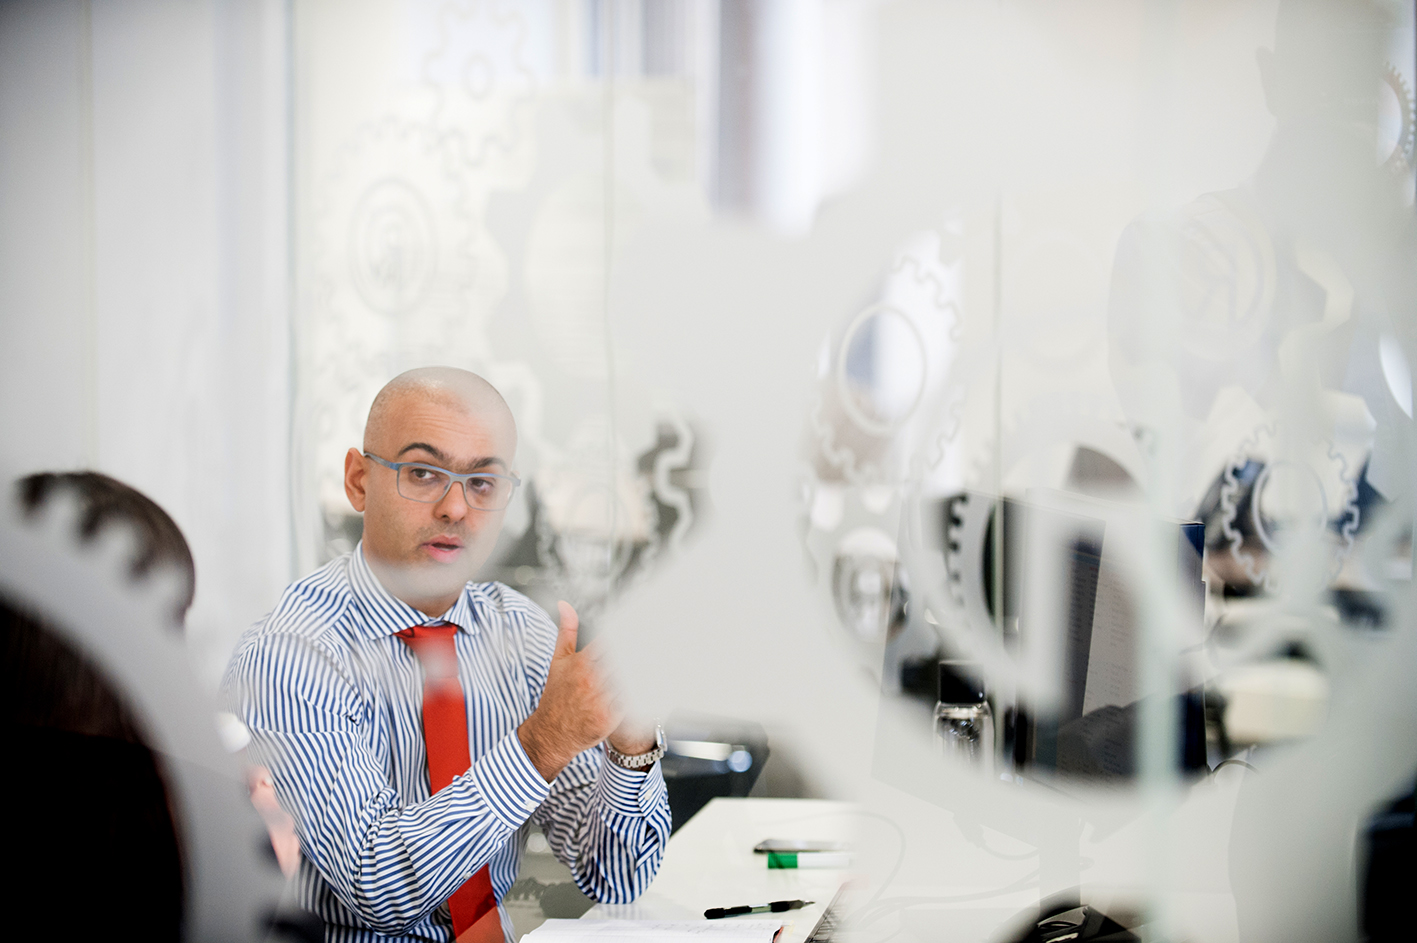 Candid reportage Image of a man in meeting in an office